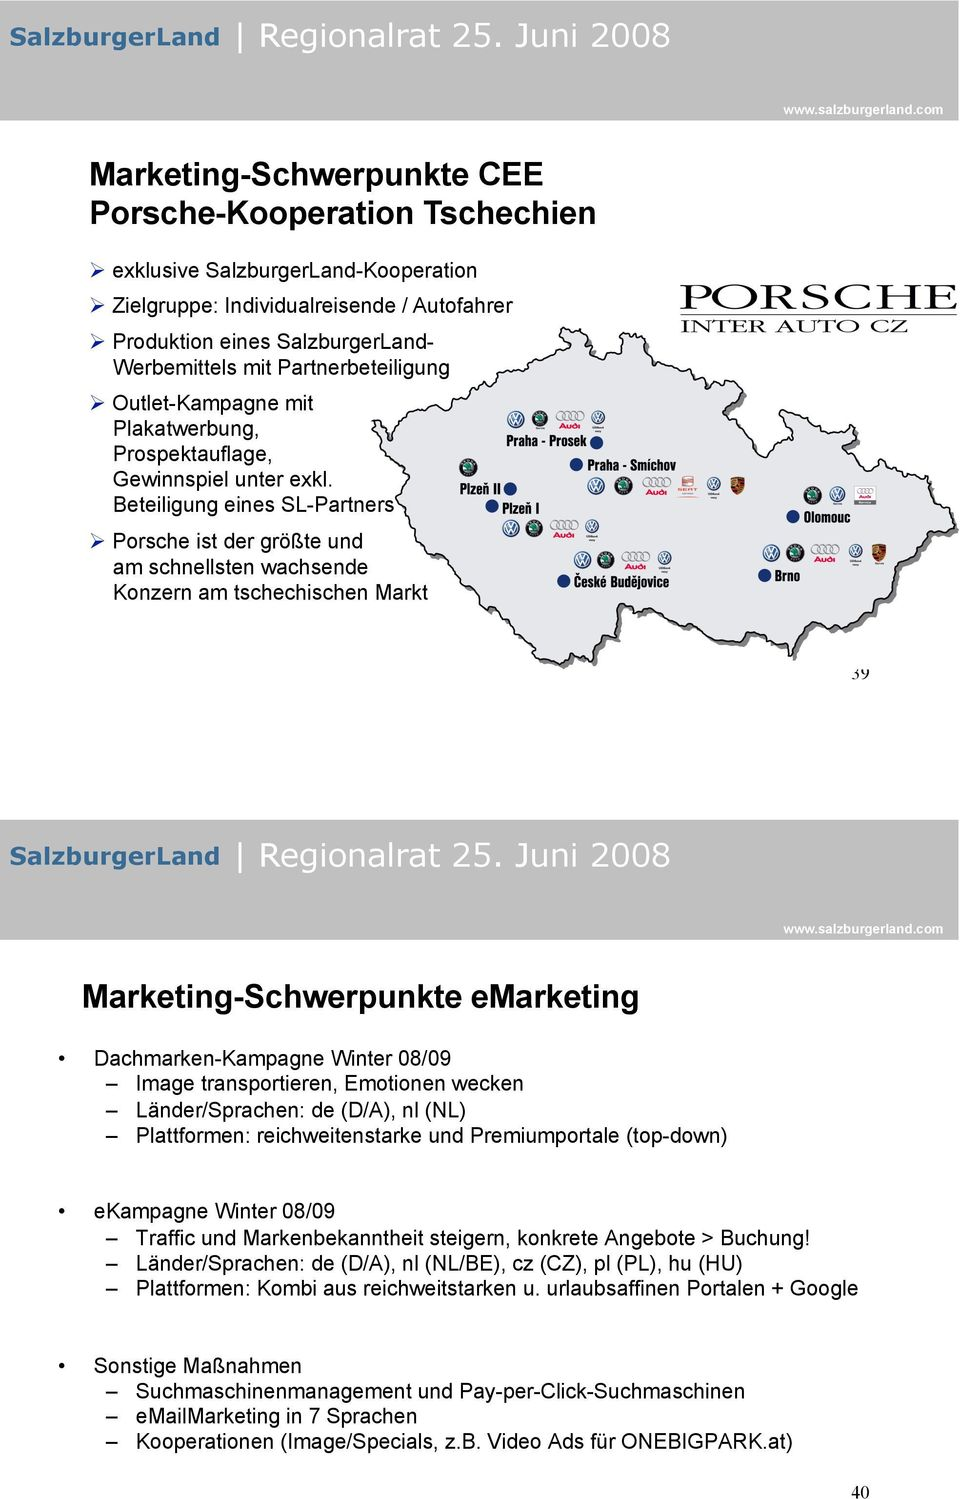 ! Porsche ist der größte und am schnellsten wachsende Konzern am tschechischen Markt 39 Marketing-Schwerpunkte emarketing Dachmarken-Kampagne Winter 08/09! Image transportieren, Emotionen wecken!